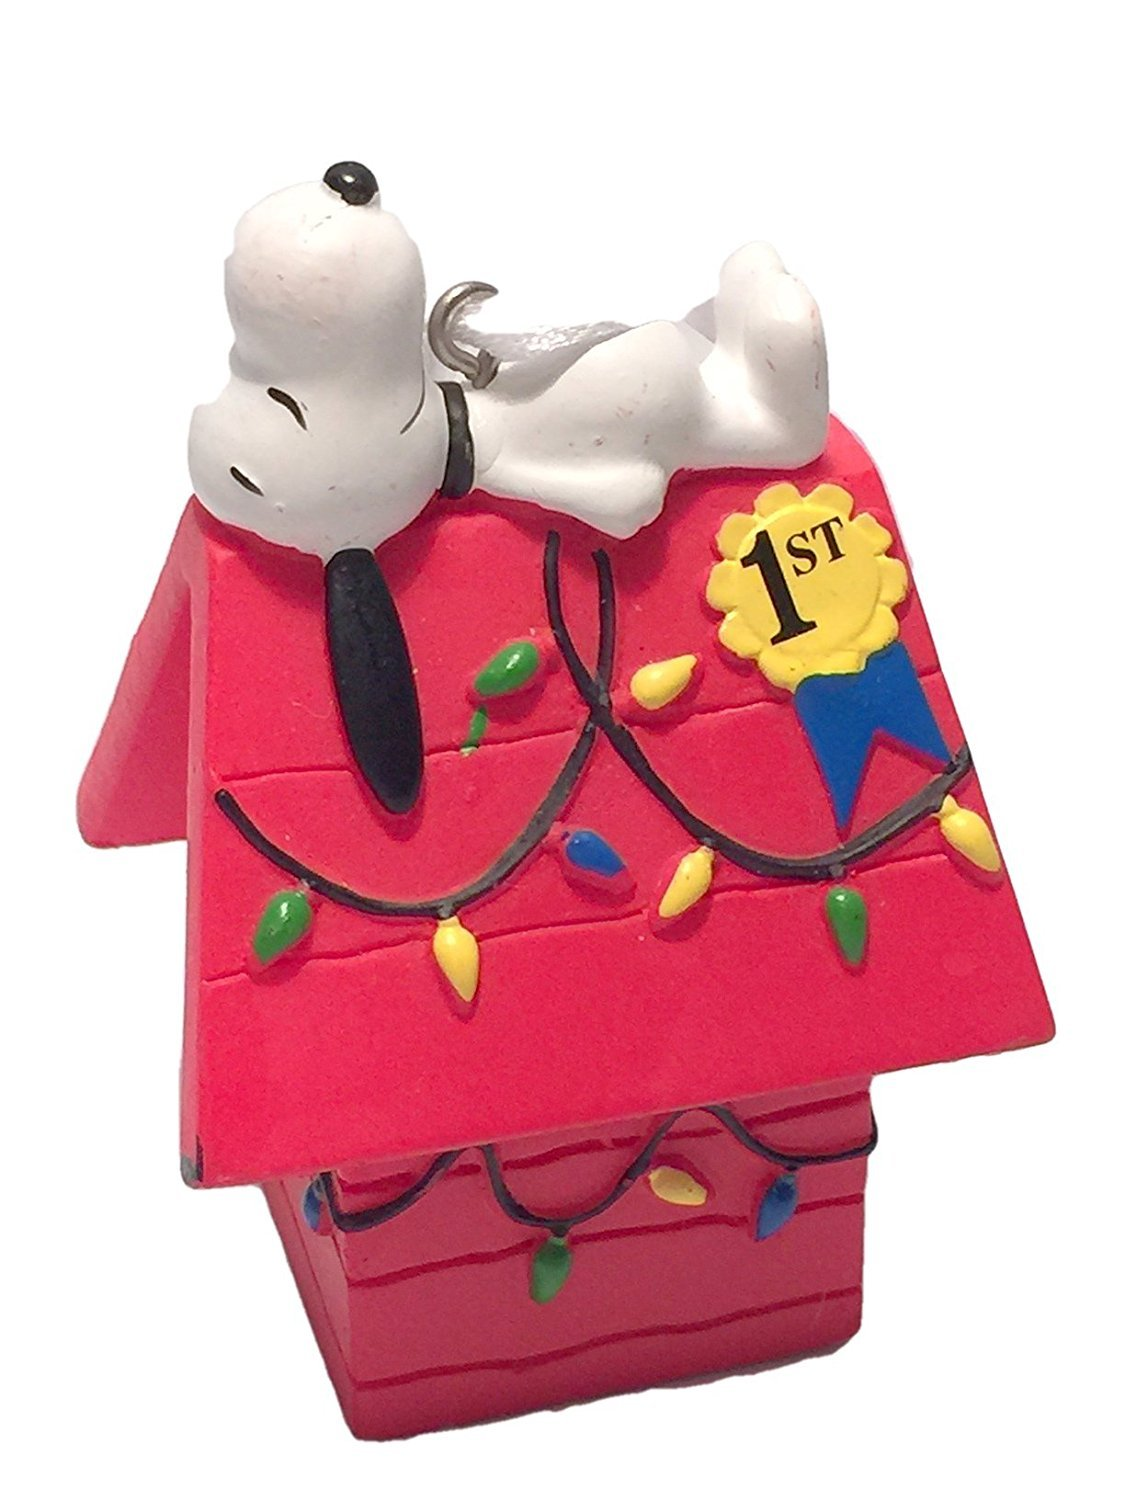 Amazoncom Hallmark Peanuts Snoopy on Doghouse Christmas Ornament